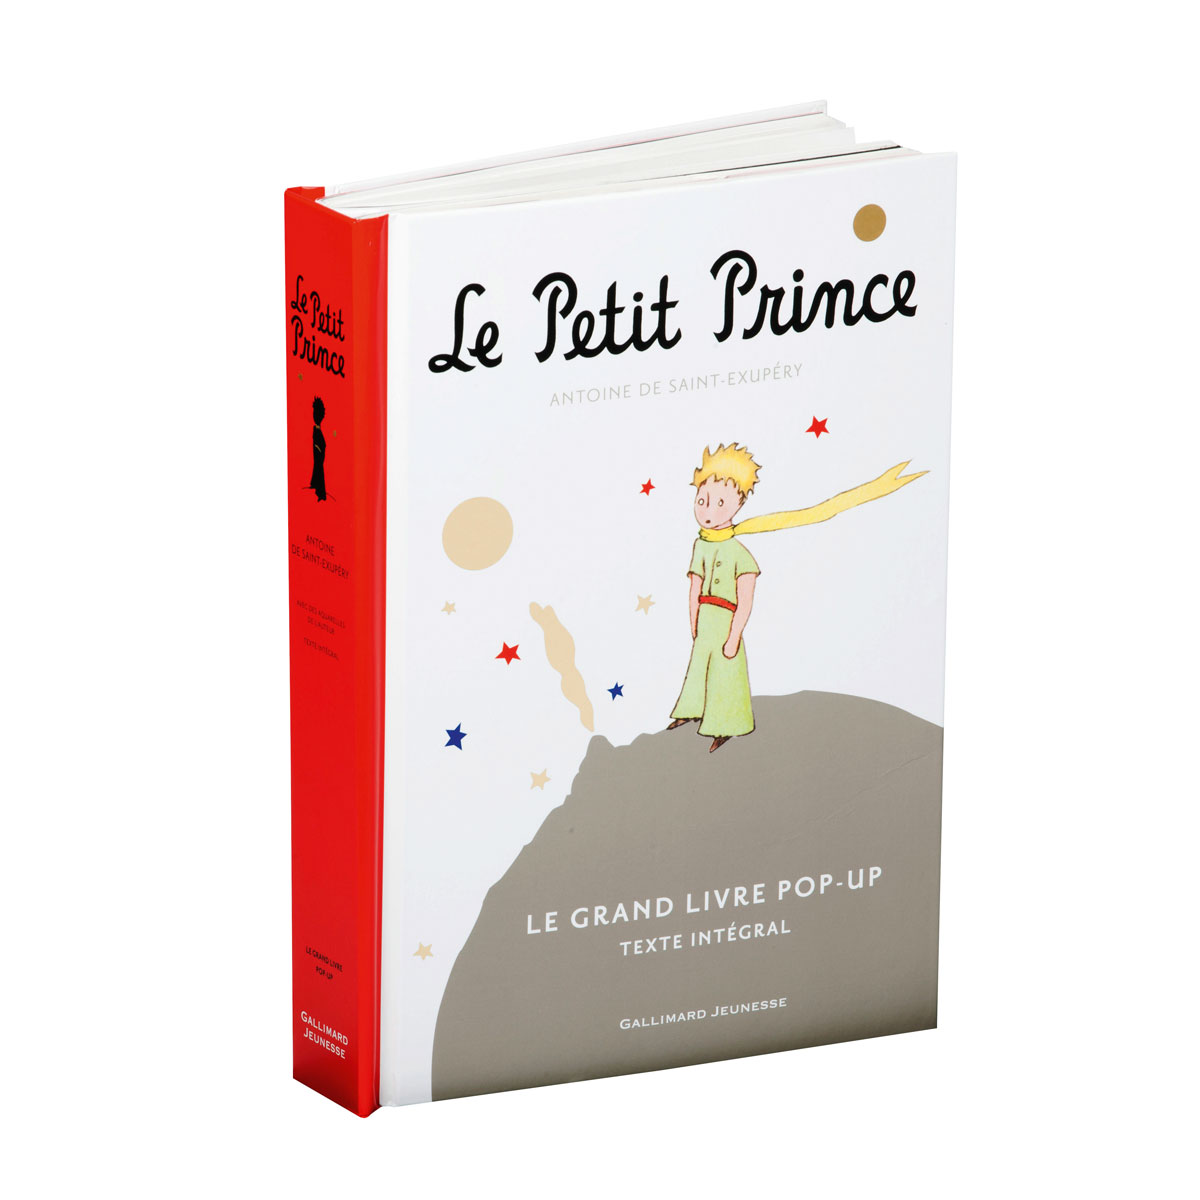 Gallimard Jeunesse Le Livre Pop Up Le Petit Prince Sunday Grenadine